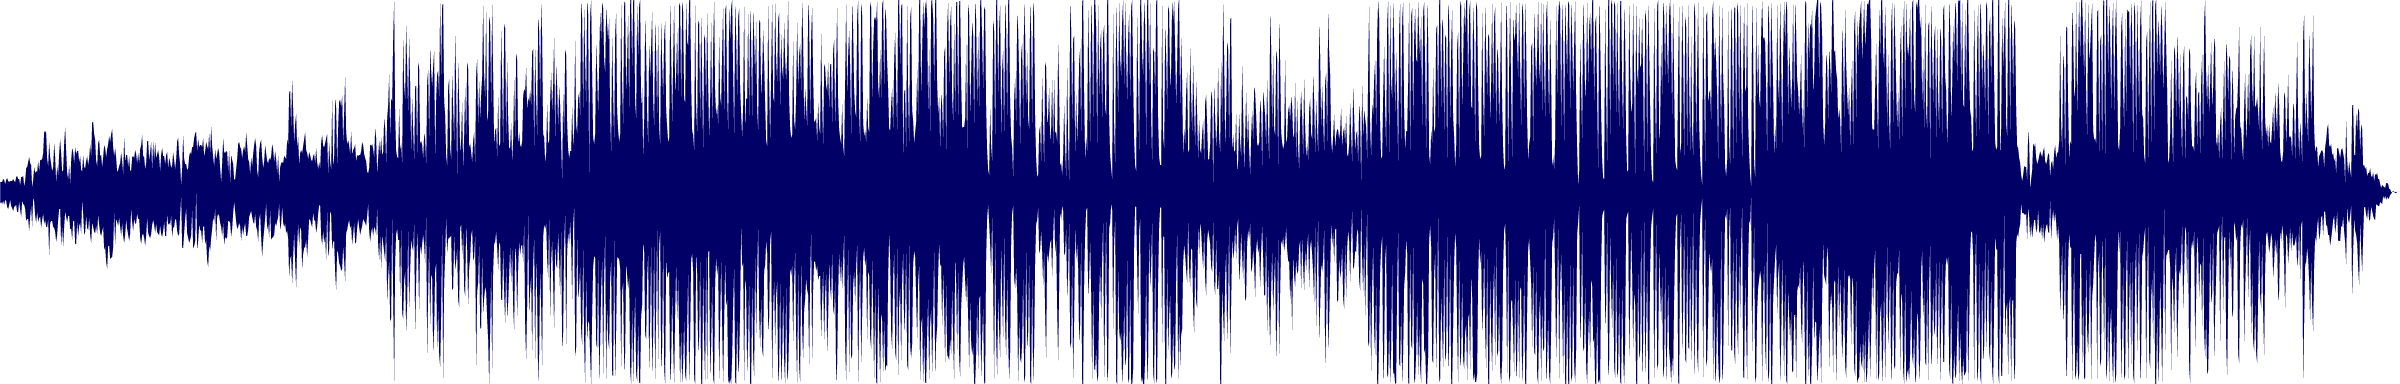 waveform of track #104054